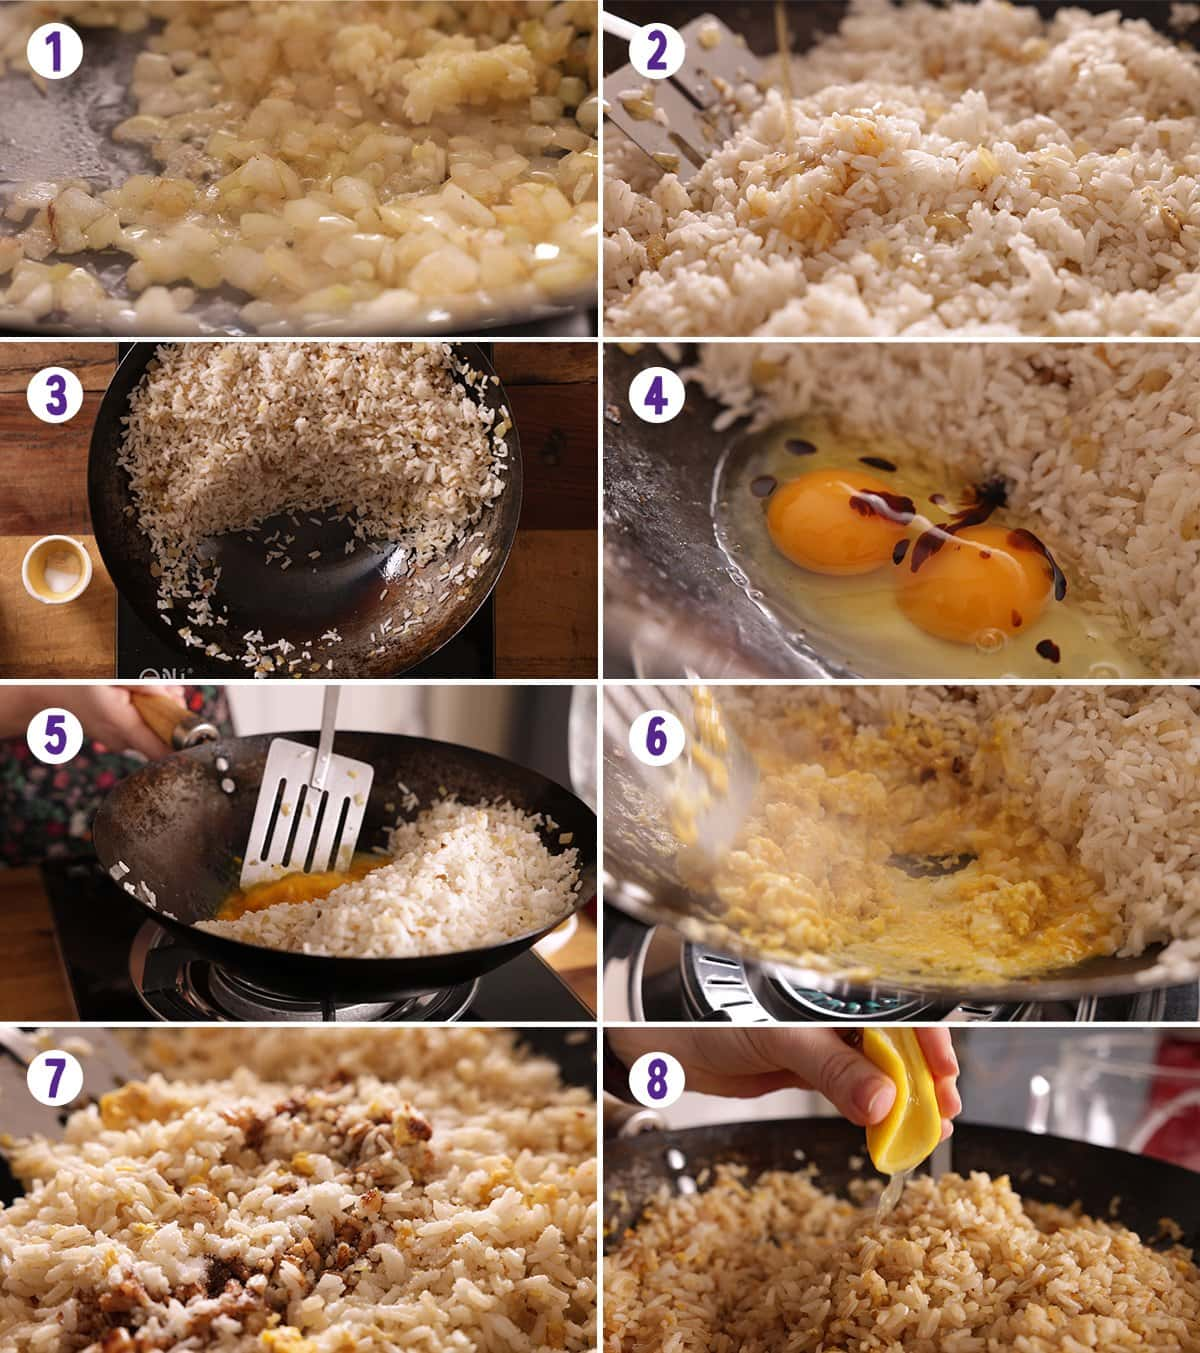 8 image collage showing how to make egg fried rice.